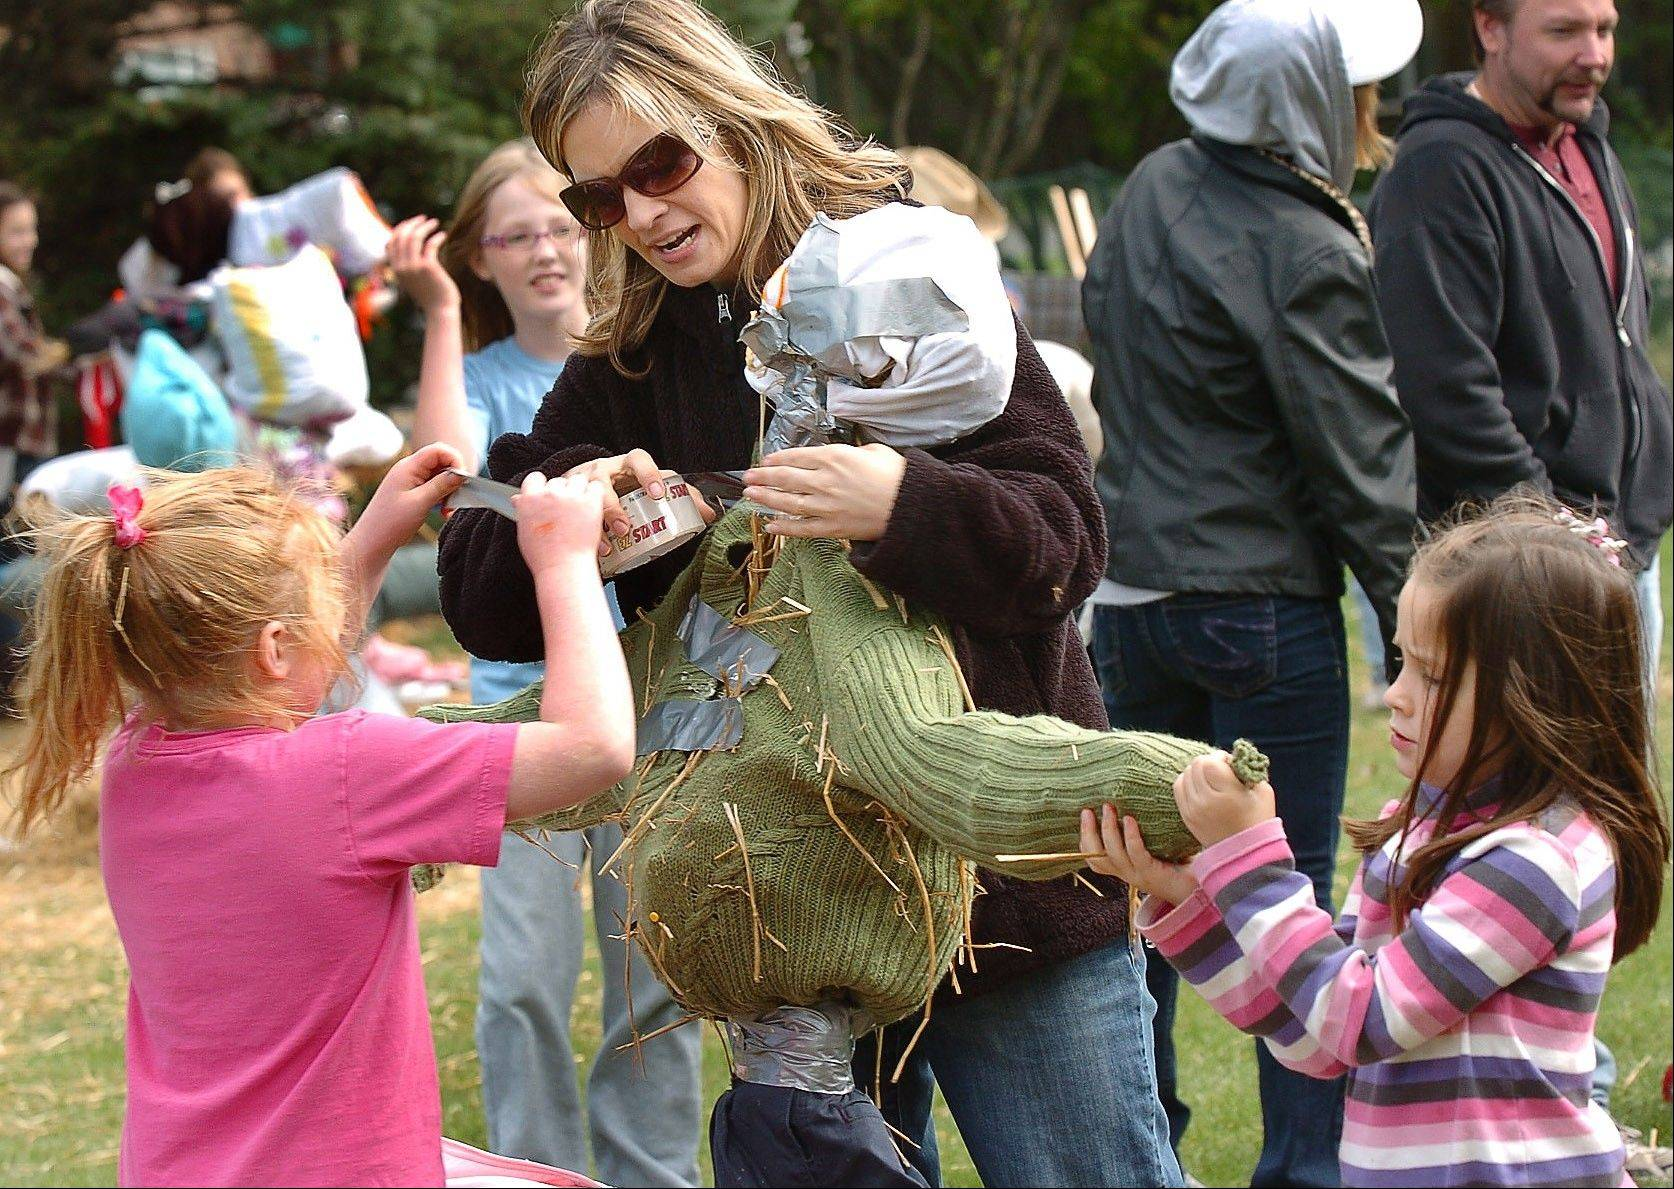 In a photo from 2010, Erin Trunda, middle, works on a scarecrow for the scarecrow competition with Rebecca Caliendo, left, and Katie Trunda.